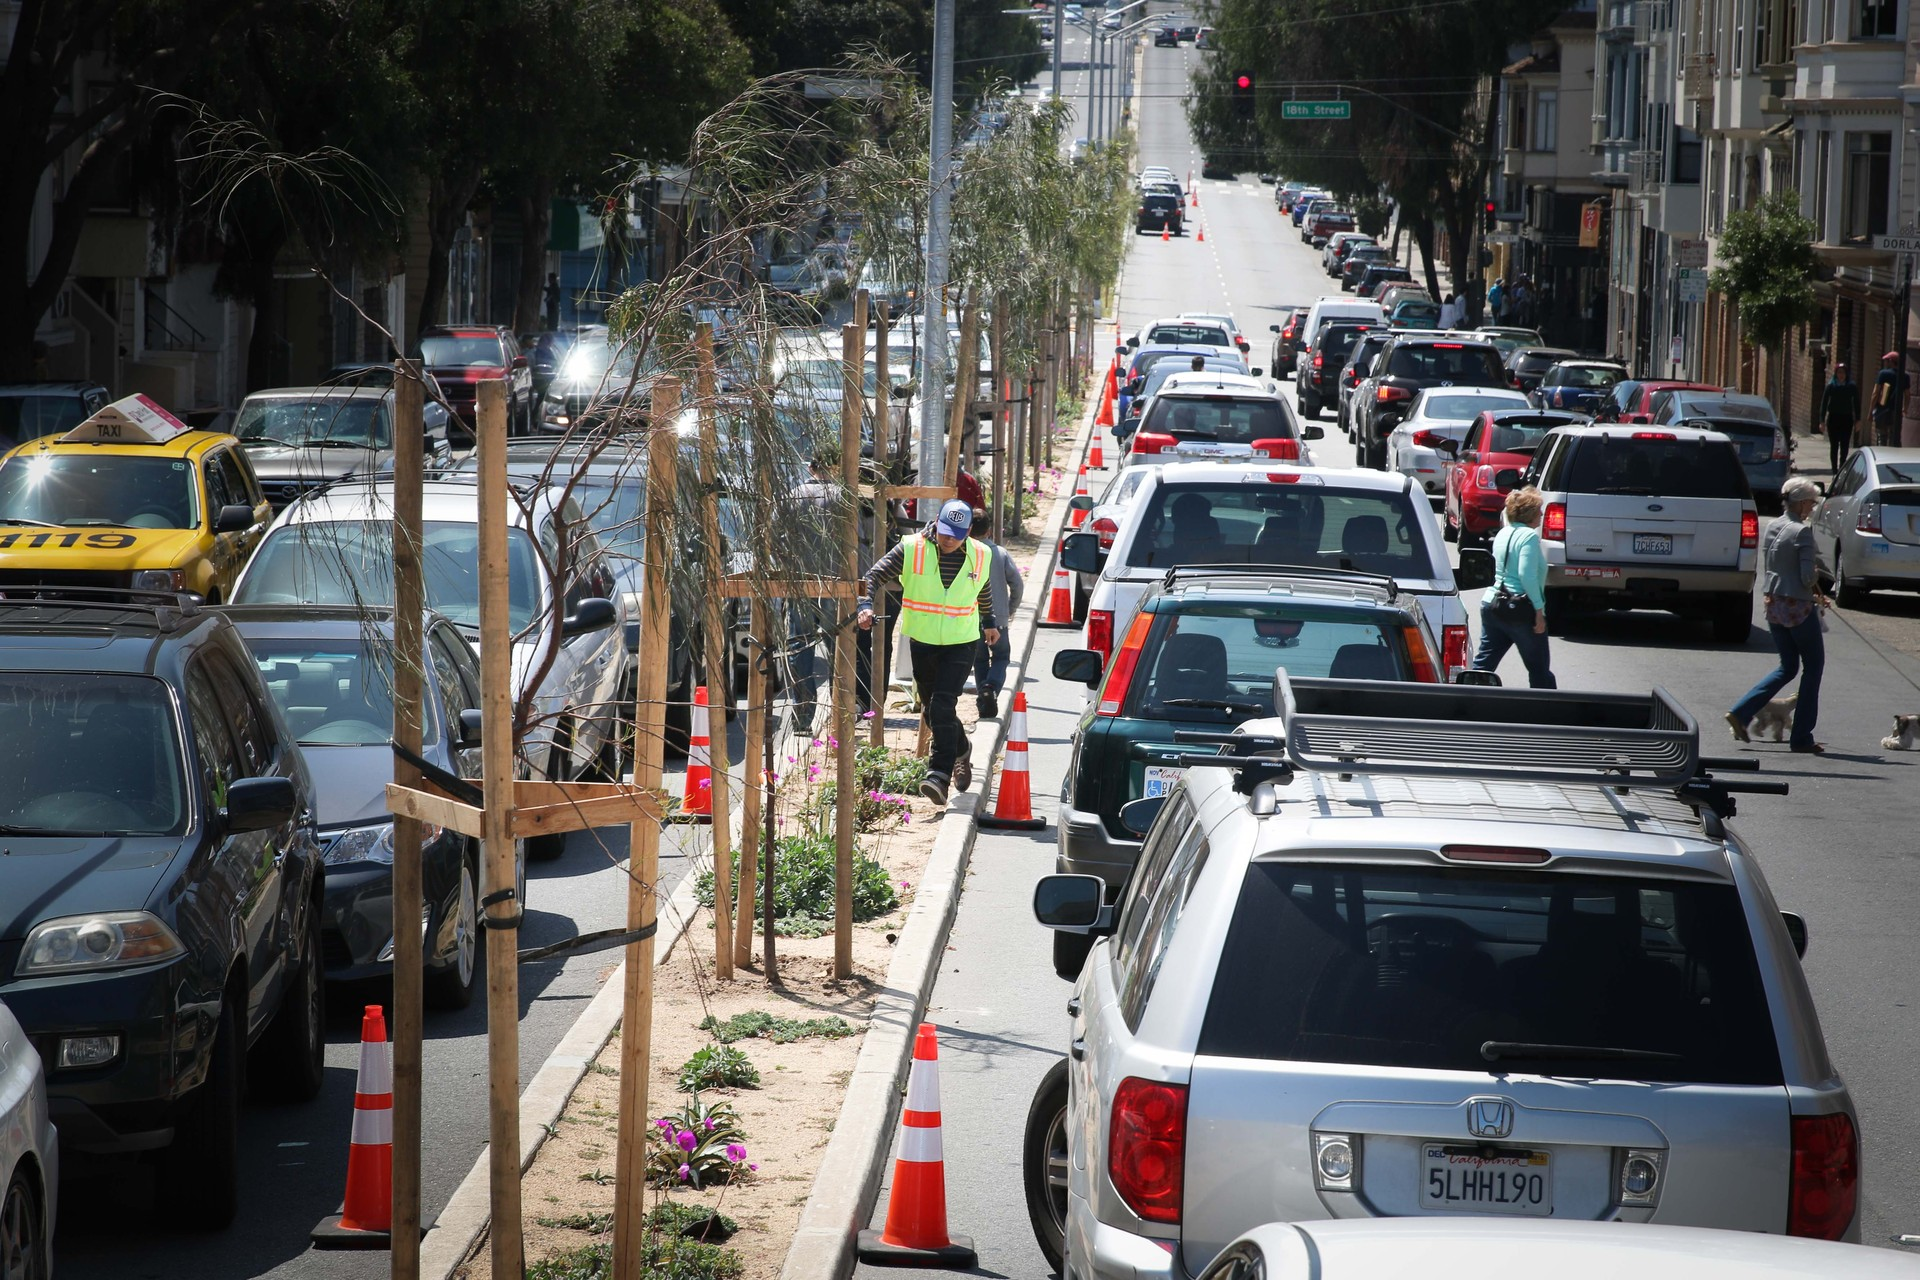 On Sundays, Cornerstone Church's volunteer parking attendants help their members double-park on Guerrero between 17th and 18th streets. When services are finished around 1:30 p.m., they call SFMTA to ticket anyone still parked in the street.